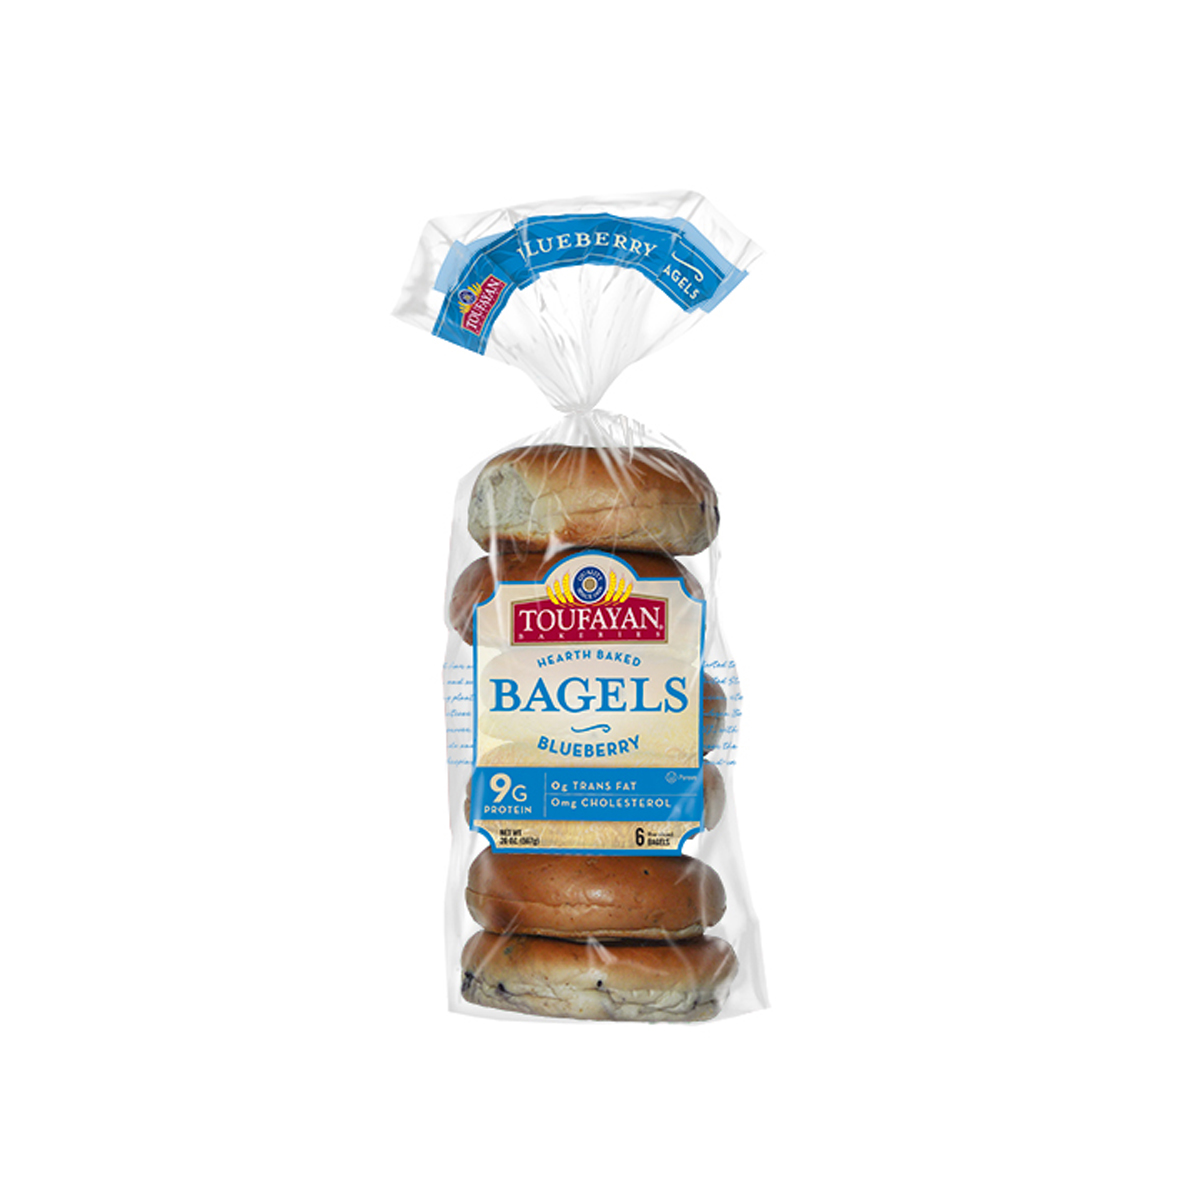 Bagel Blueberry Toufayan